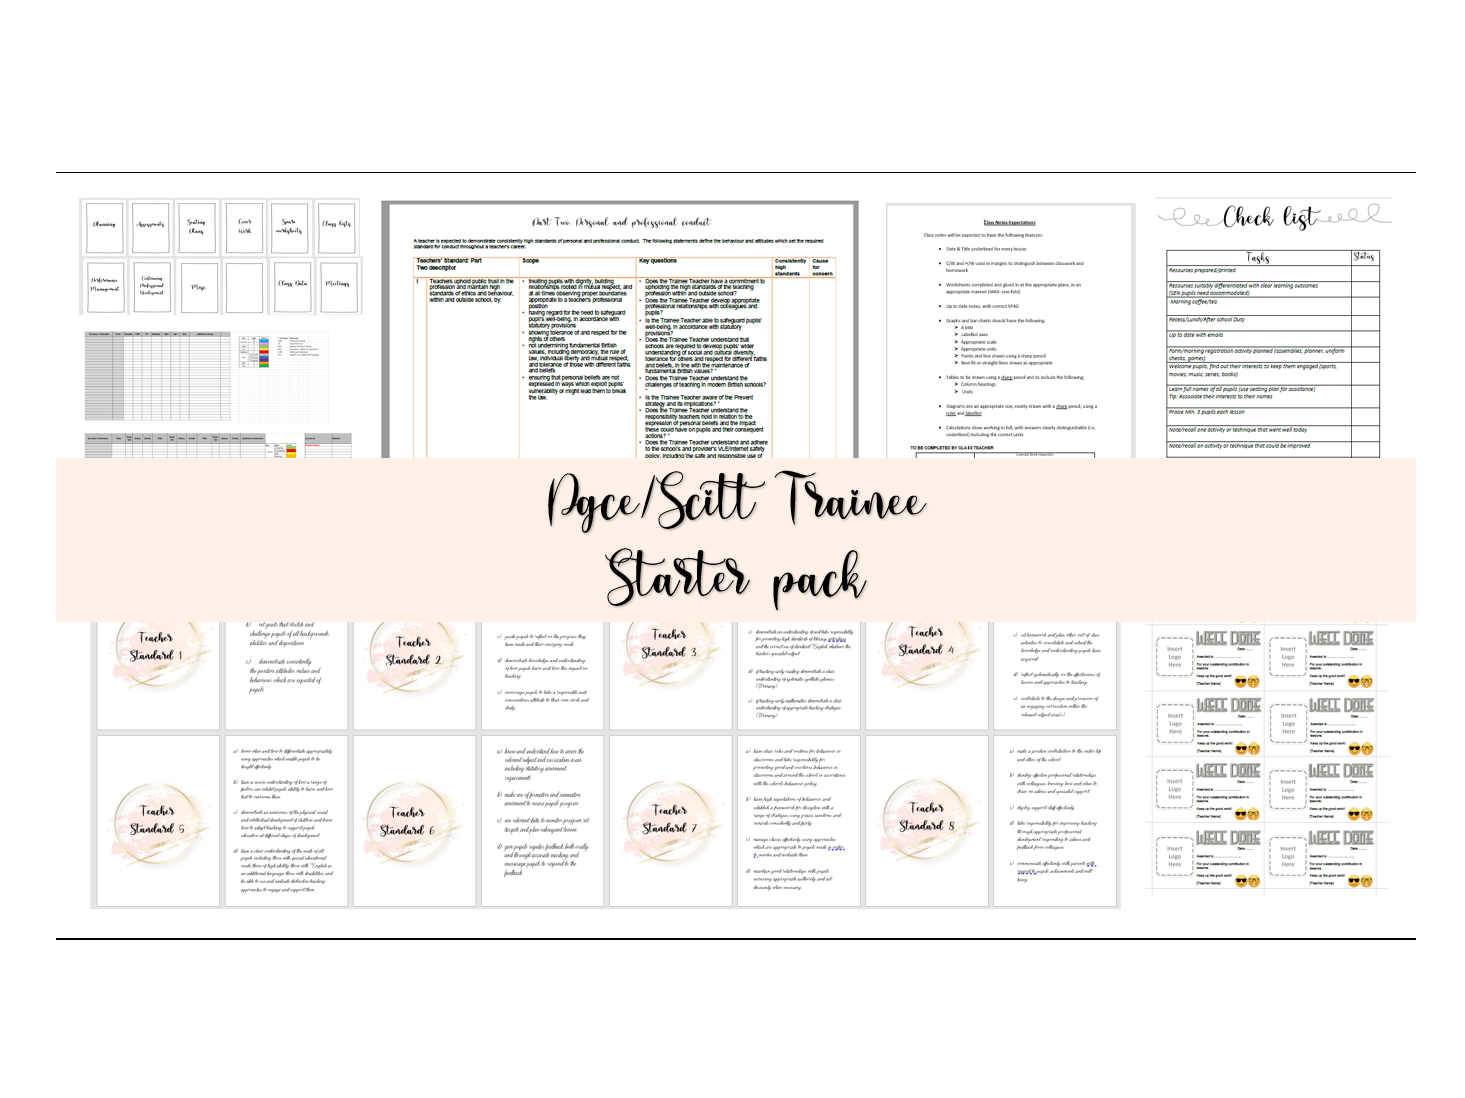 PGCE SCITT Trainee Bundle Rose Gold Edition